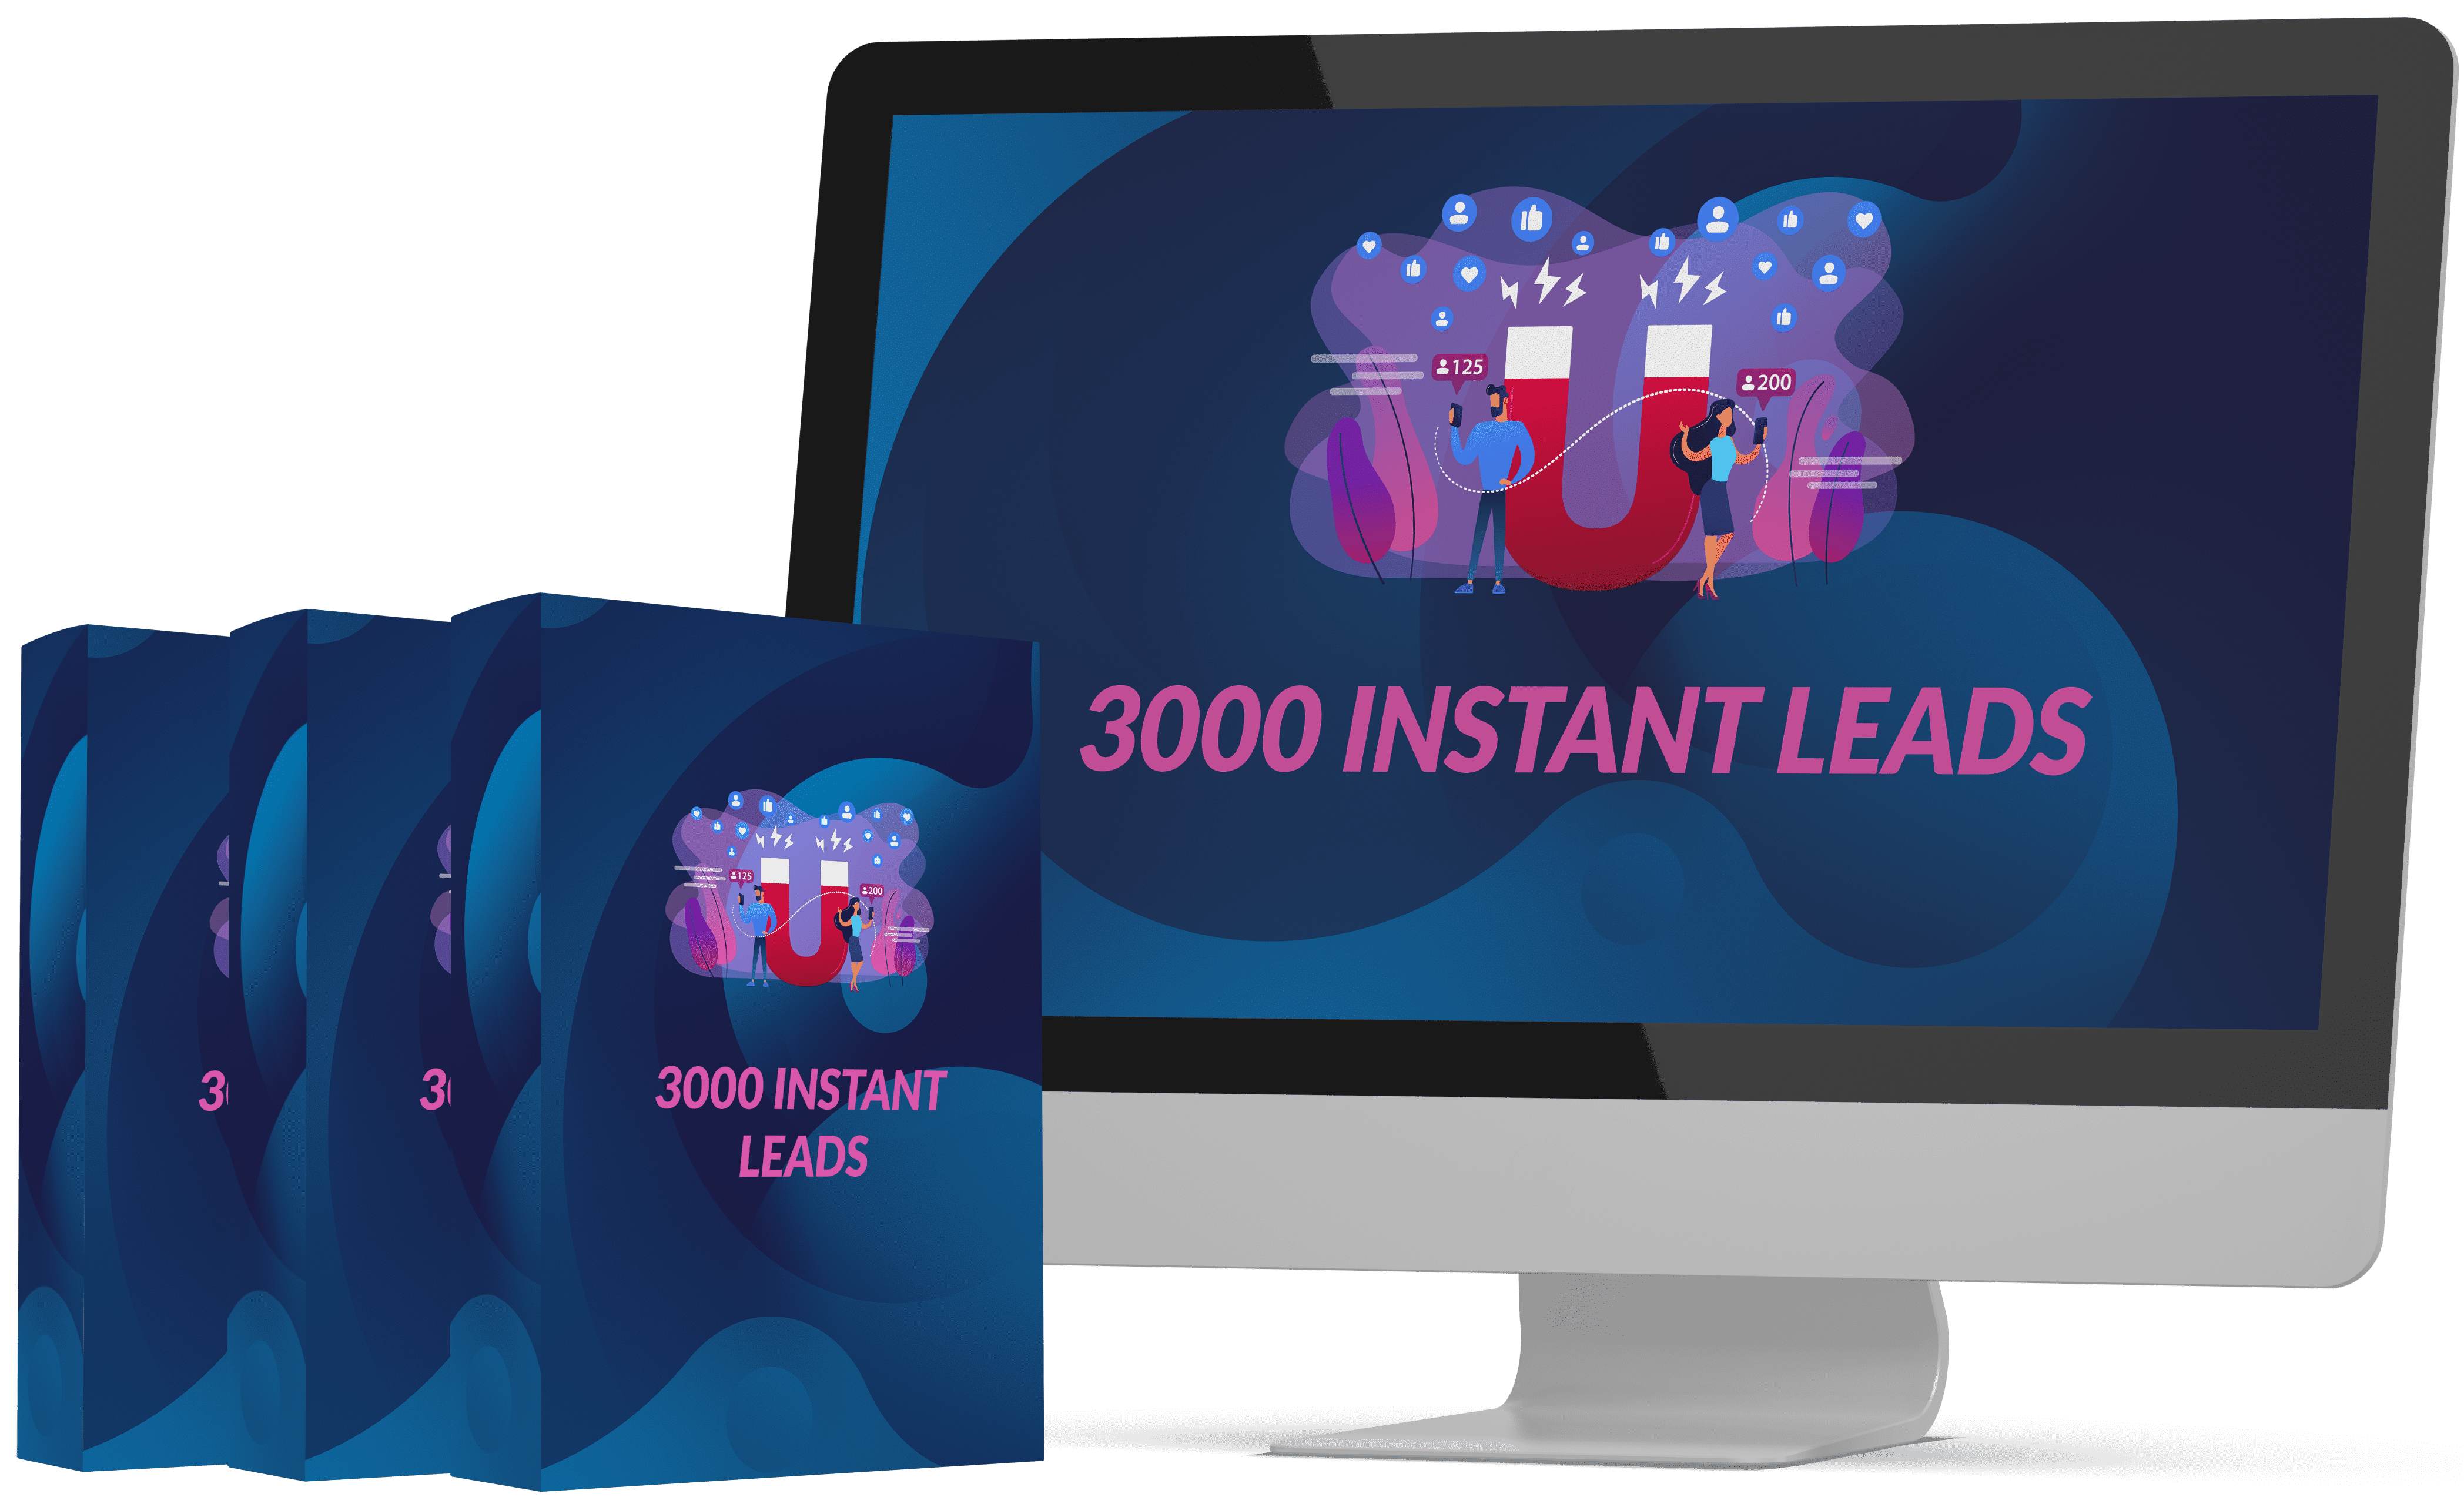 3000 Instant Leads